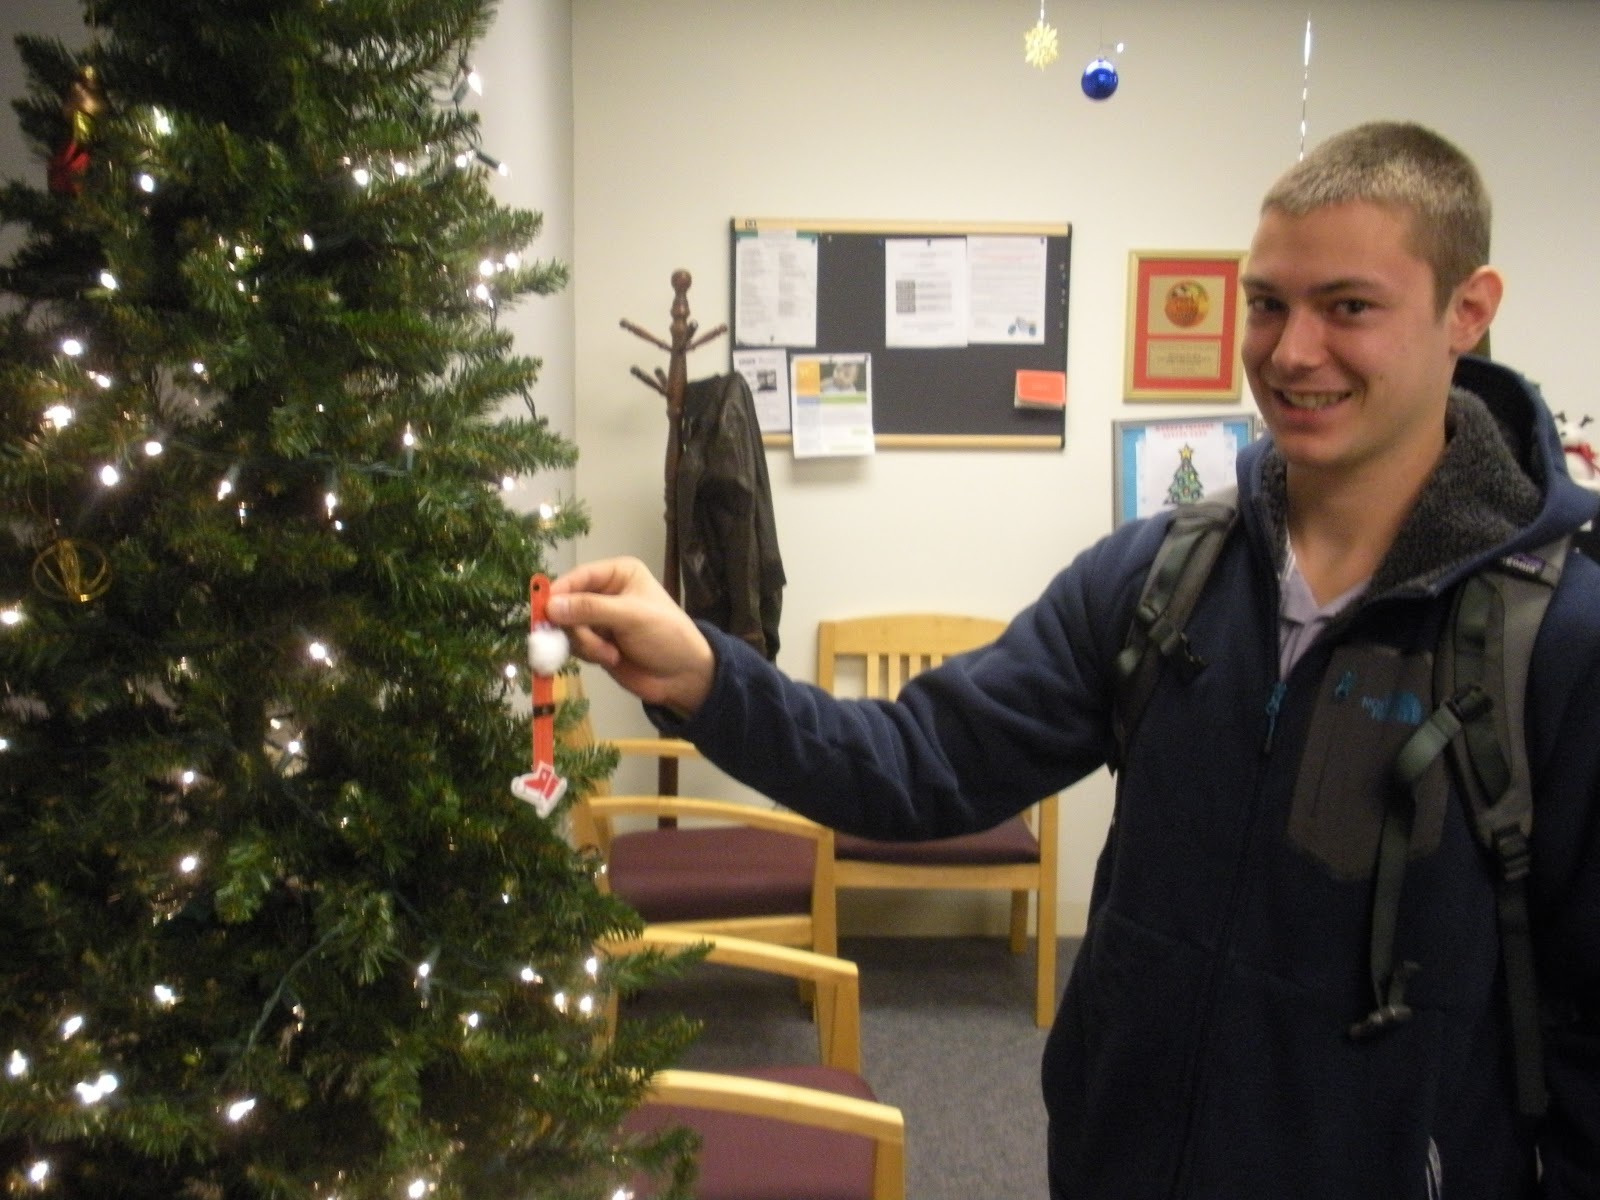 College hunter physical therapy - Chris Sorgani Class Of 2016 Is The First Pt Student To Put An Ornament On The Tree